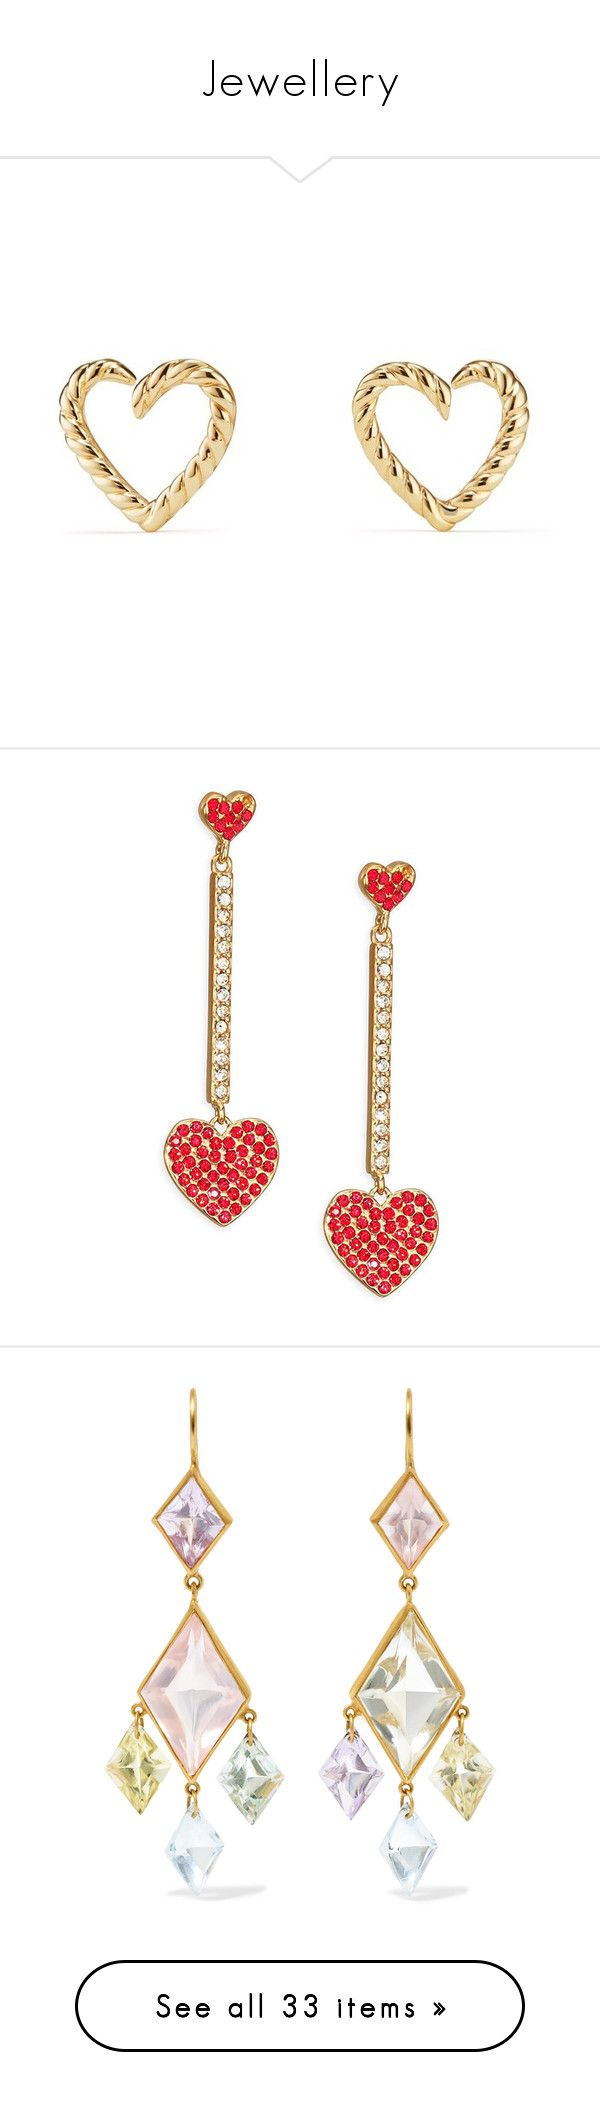 """""""Jewellery"""" by adeasahiti ❤ liked on Polyvore featuring jewelry, earrings, gold, 18 karat gold earrings, heart shaped earrings, yellow gold earrings, earring jewelry, heart jewellery, red earrings and 14 karat gold earrings"""